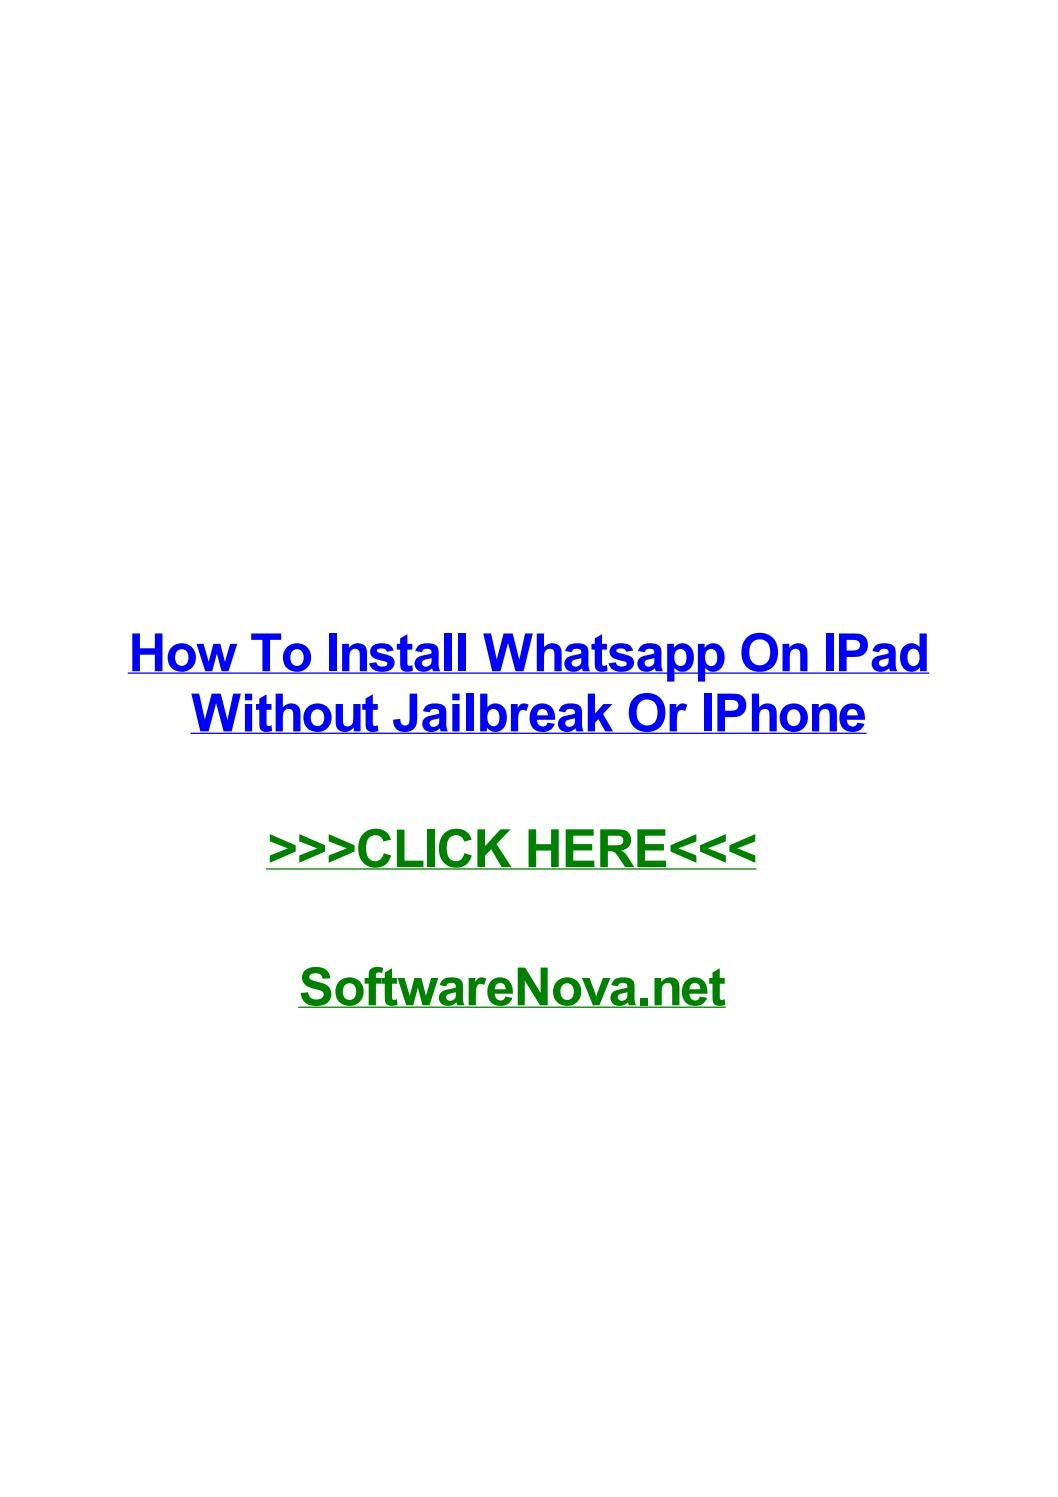 How to install whatsapp on ipad without jailbreak or iphone